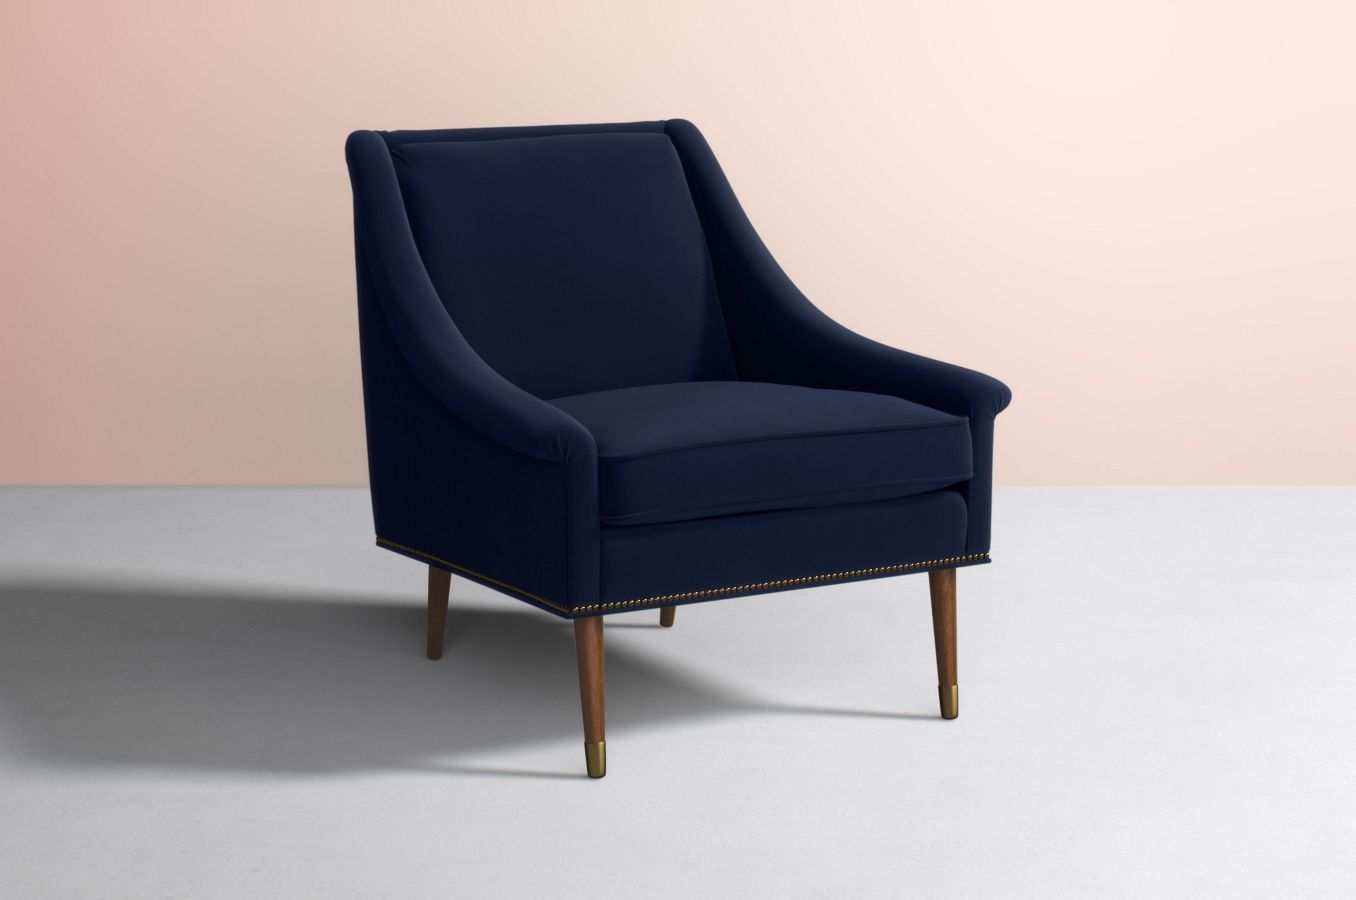 Tillie Chair Chair, Accent chairs for living room